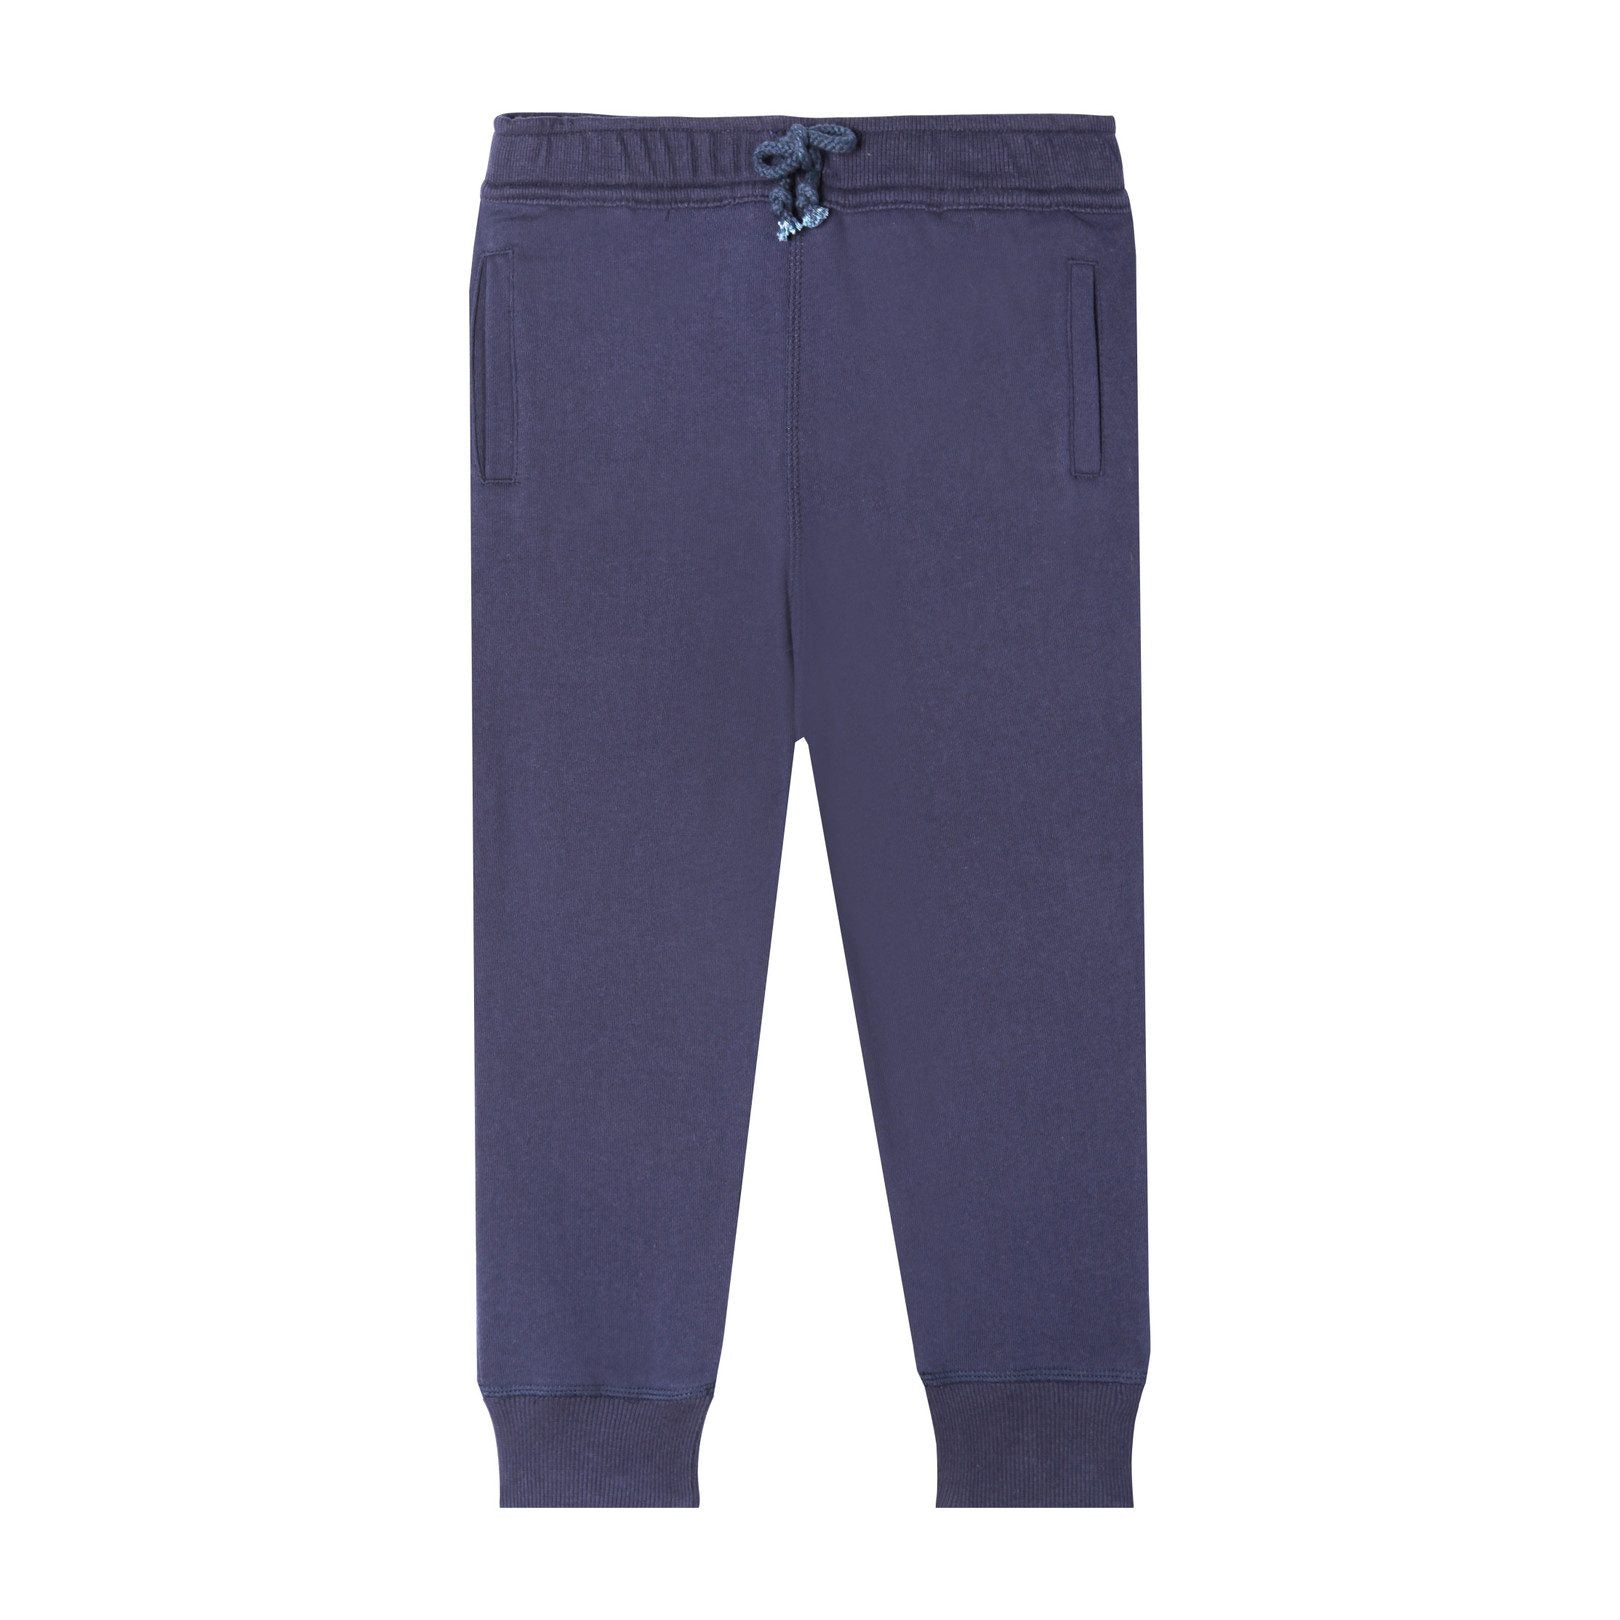 Art & Eden Organic Cotton Mercer Jogger - Navy